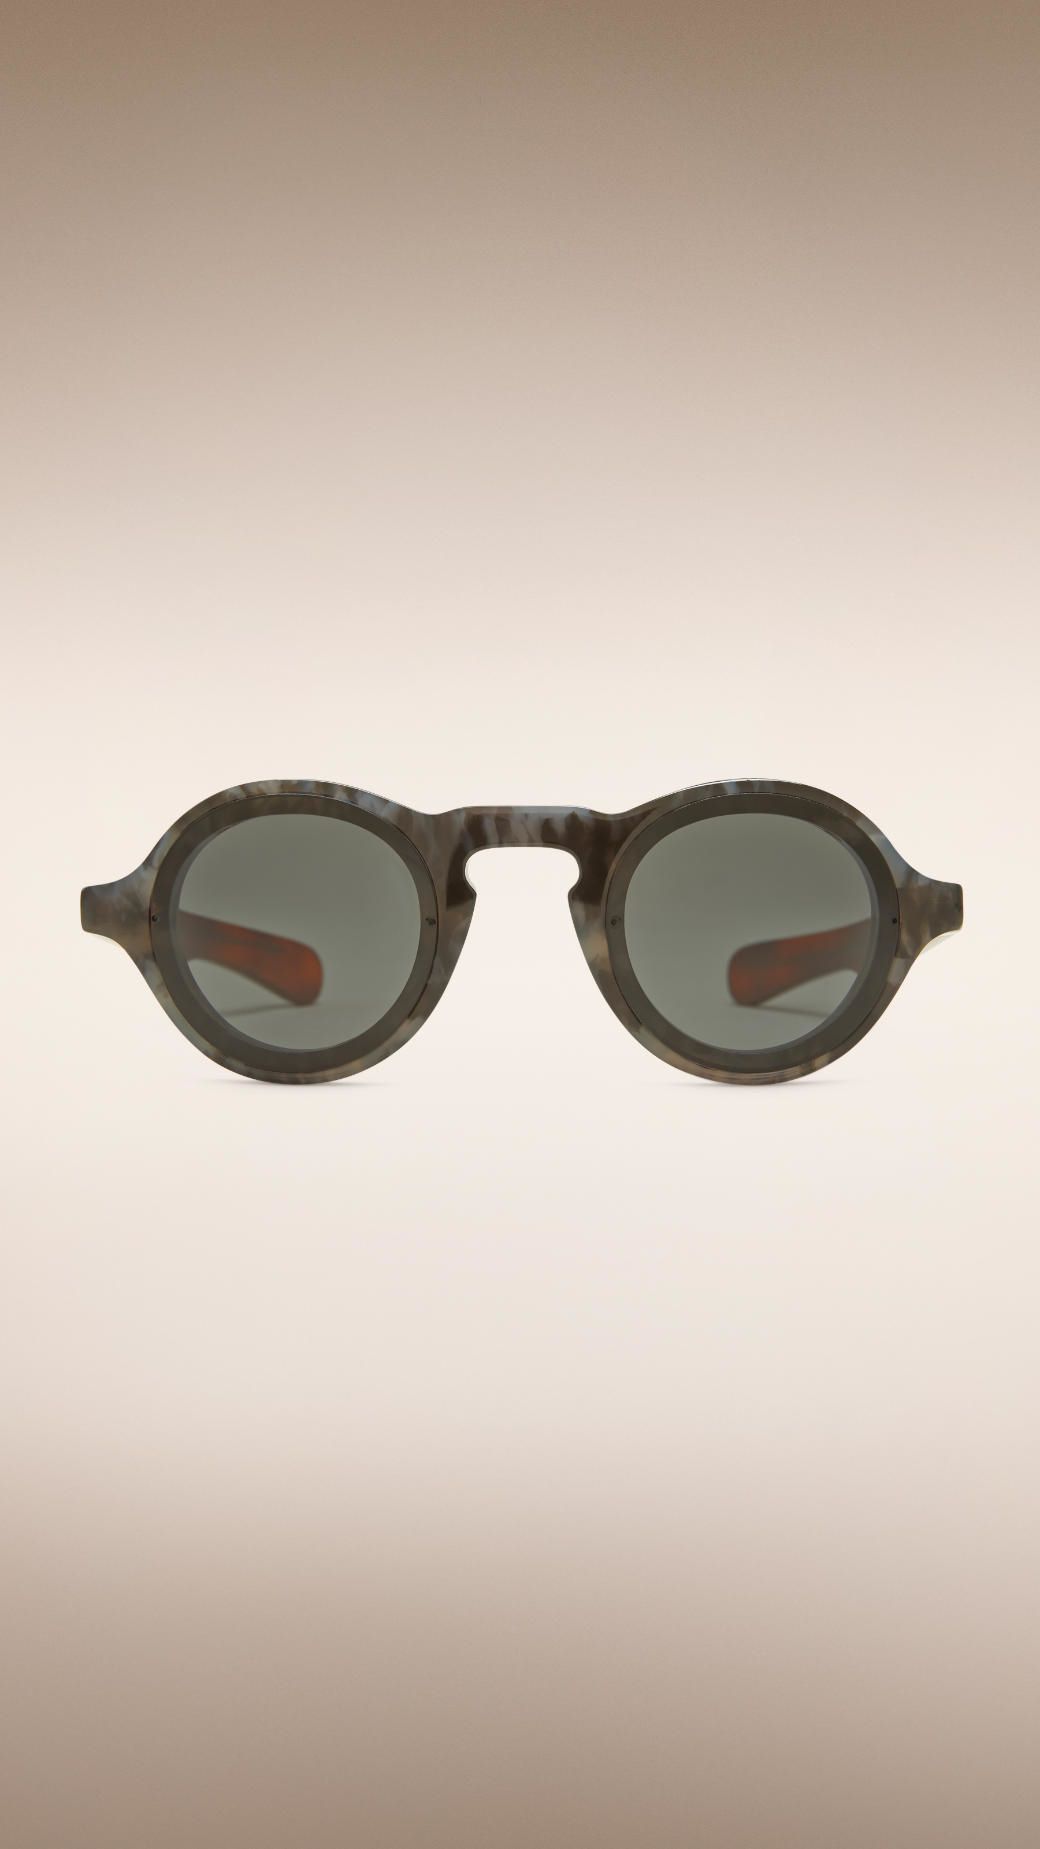 42be77dfbd9 Lyst - Burberry Colour Block Round Frame Sunglasses in Gray